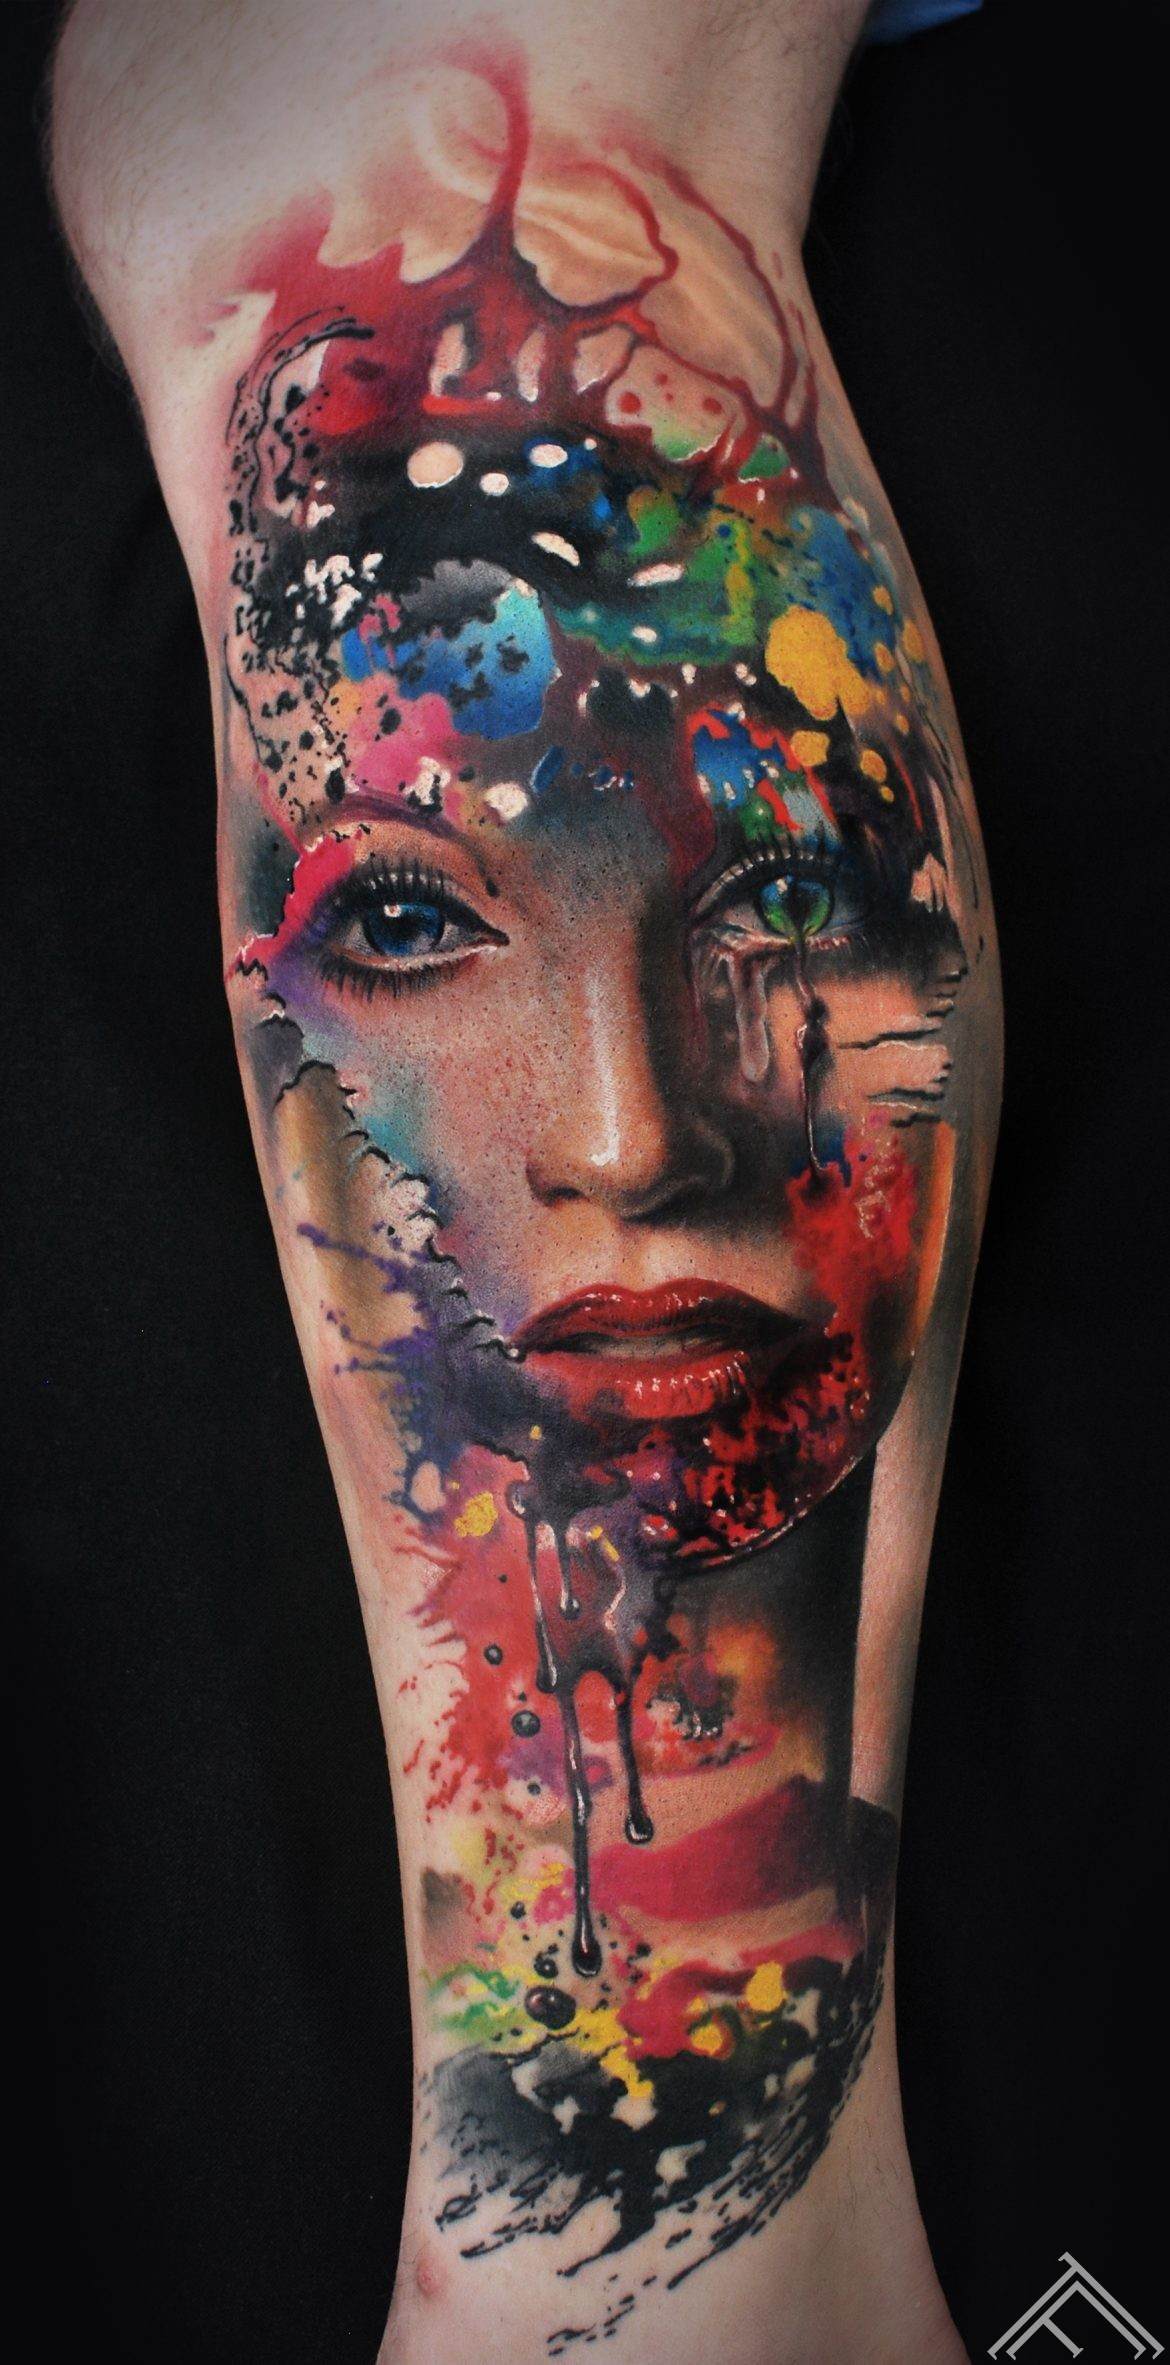 woman-color-colour-krasas-sieviete-portrait-portrets-tattoo-tetovejums-ink-tattoofrequency-riga-marispavlo-normalsize